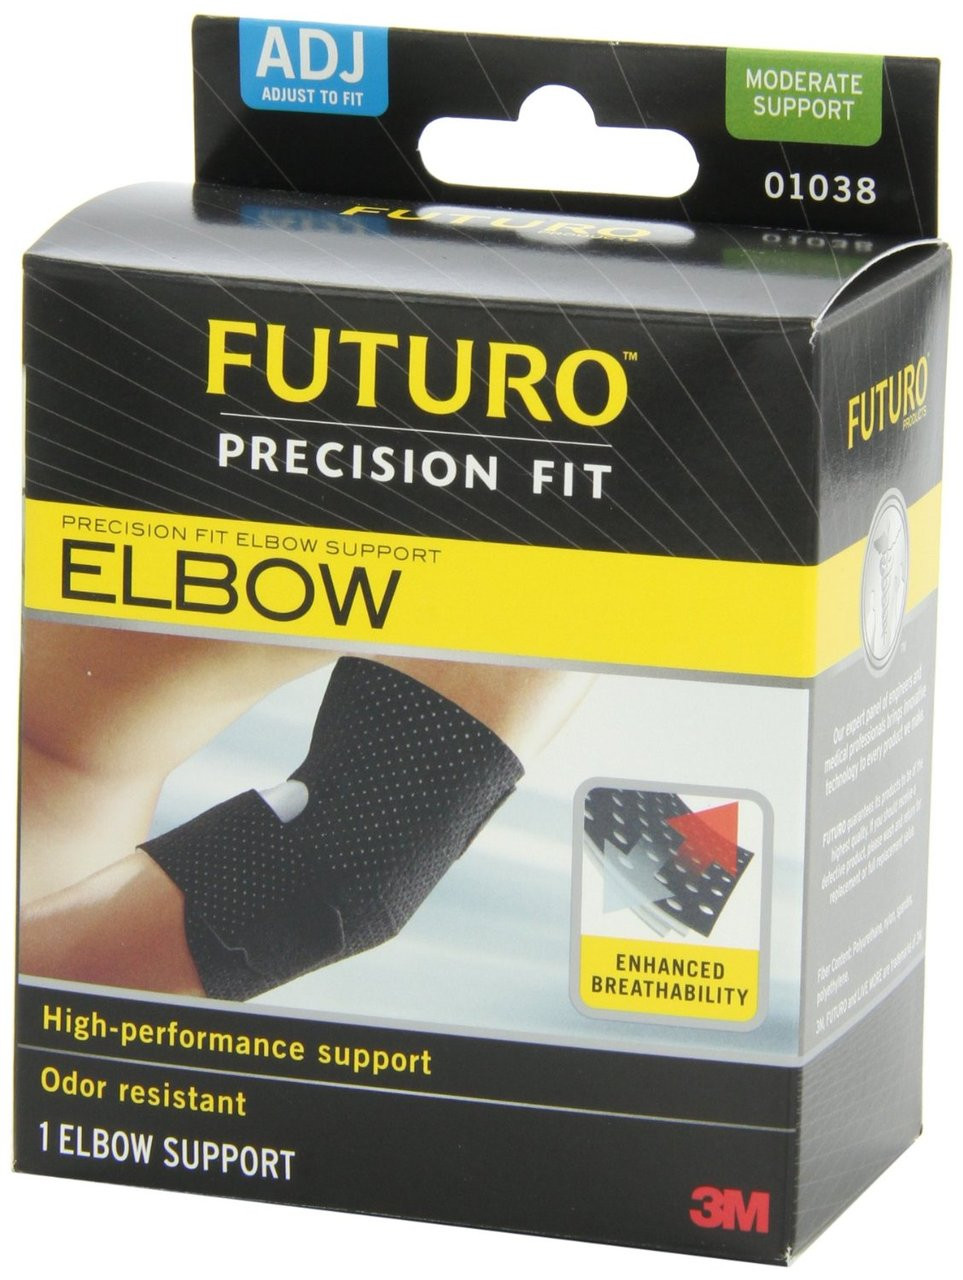 47ac8b9d65 ... Futuro Infinity Precision Fit Elbow Support, Adjustable. Image 1